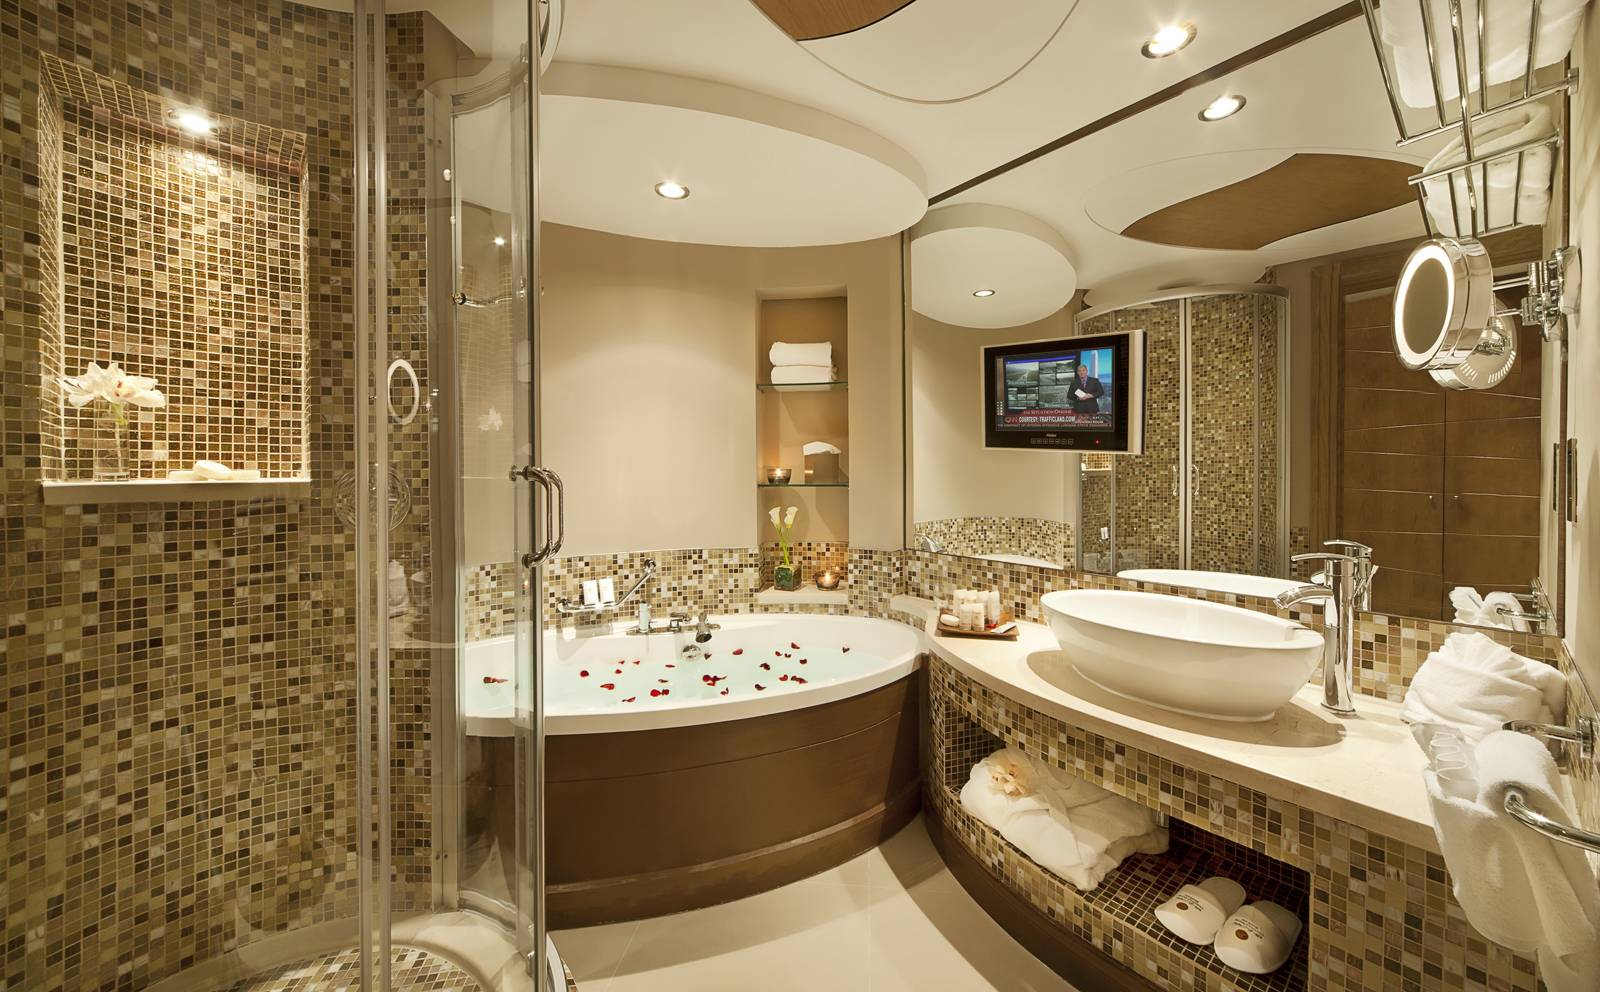 Luxury Bathrooms Hotels category 1 hotel bathroom accessories hotel bedroom accessories